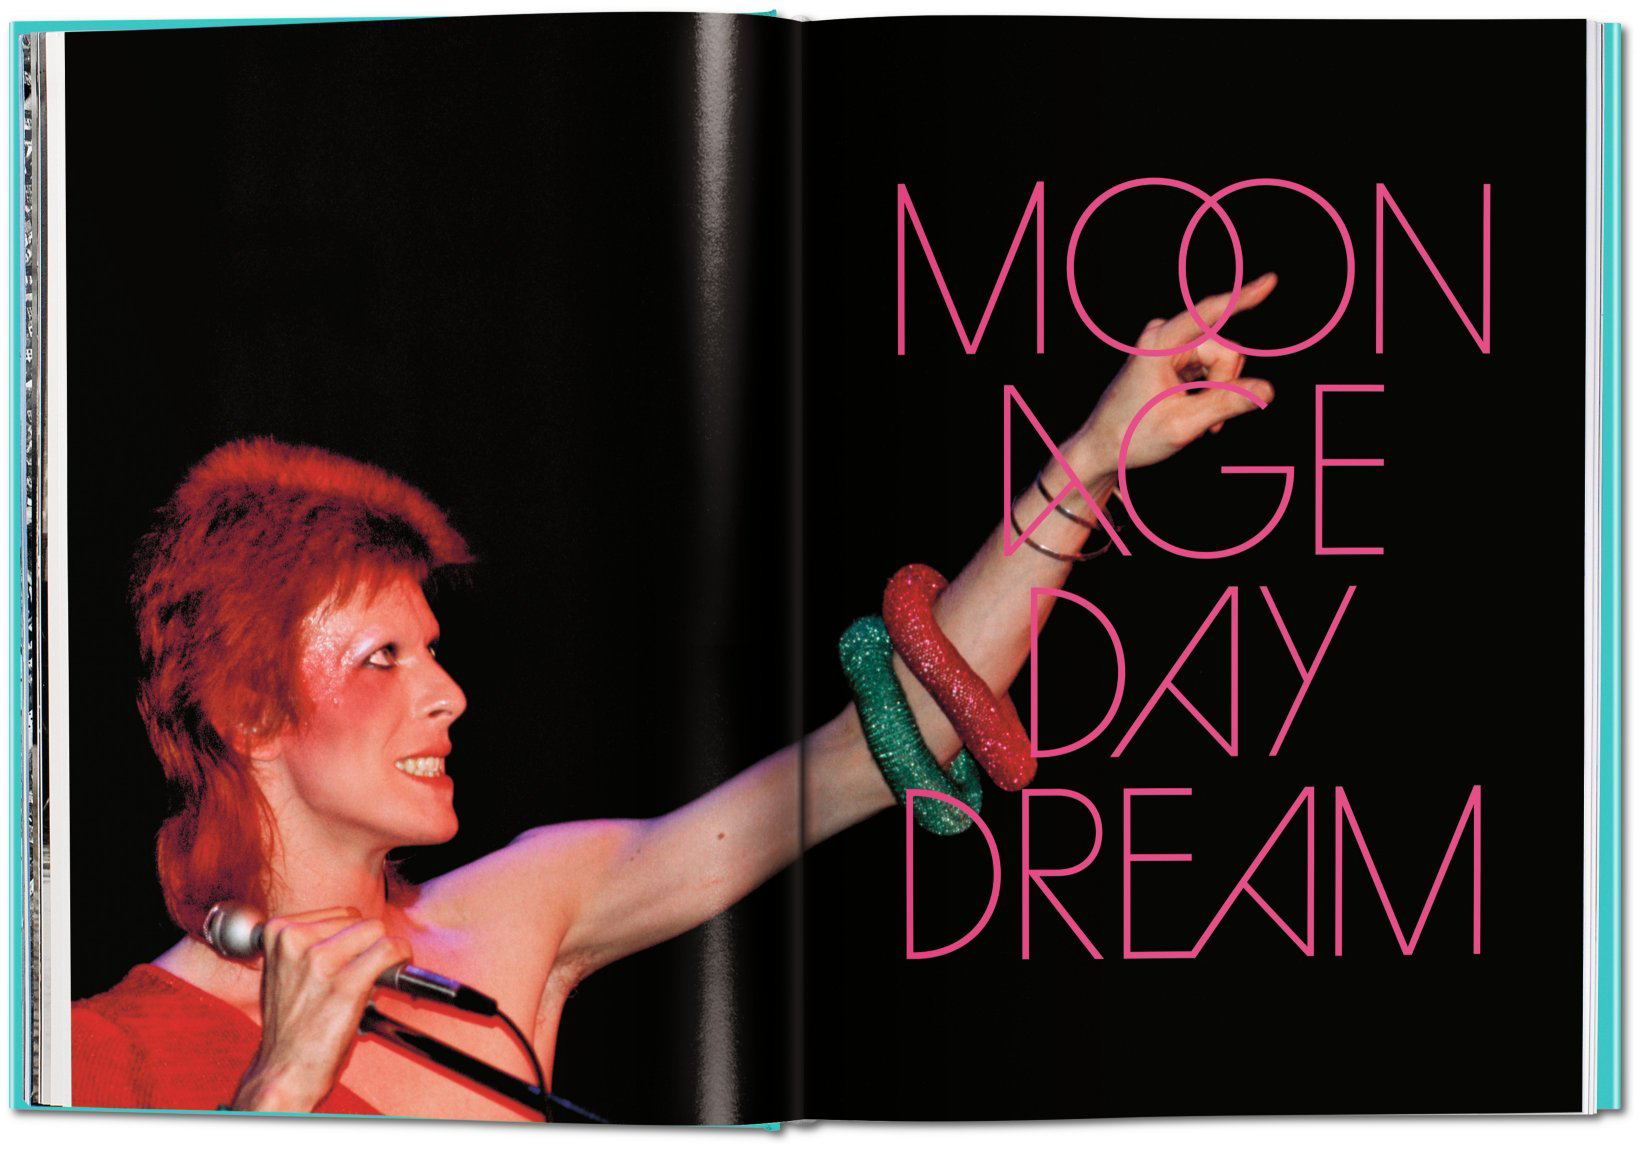 the-rise-of-david-bowie-book-inside4